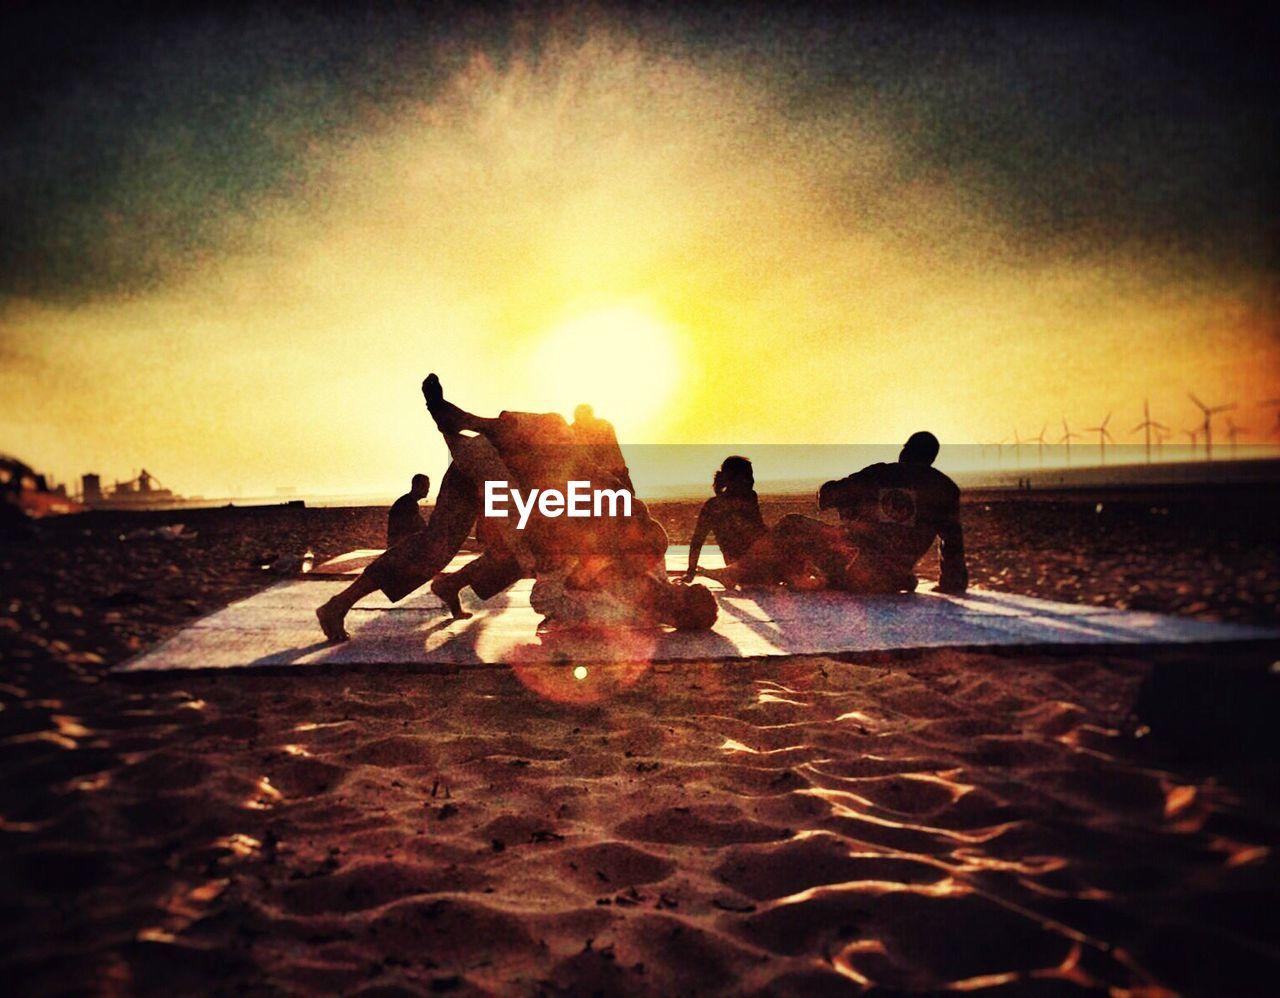 sunset, real people, men, silhouette, domestic animals, outdoors, sand, sky, nature, mammal, clear sky, day, adult, people